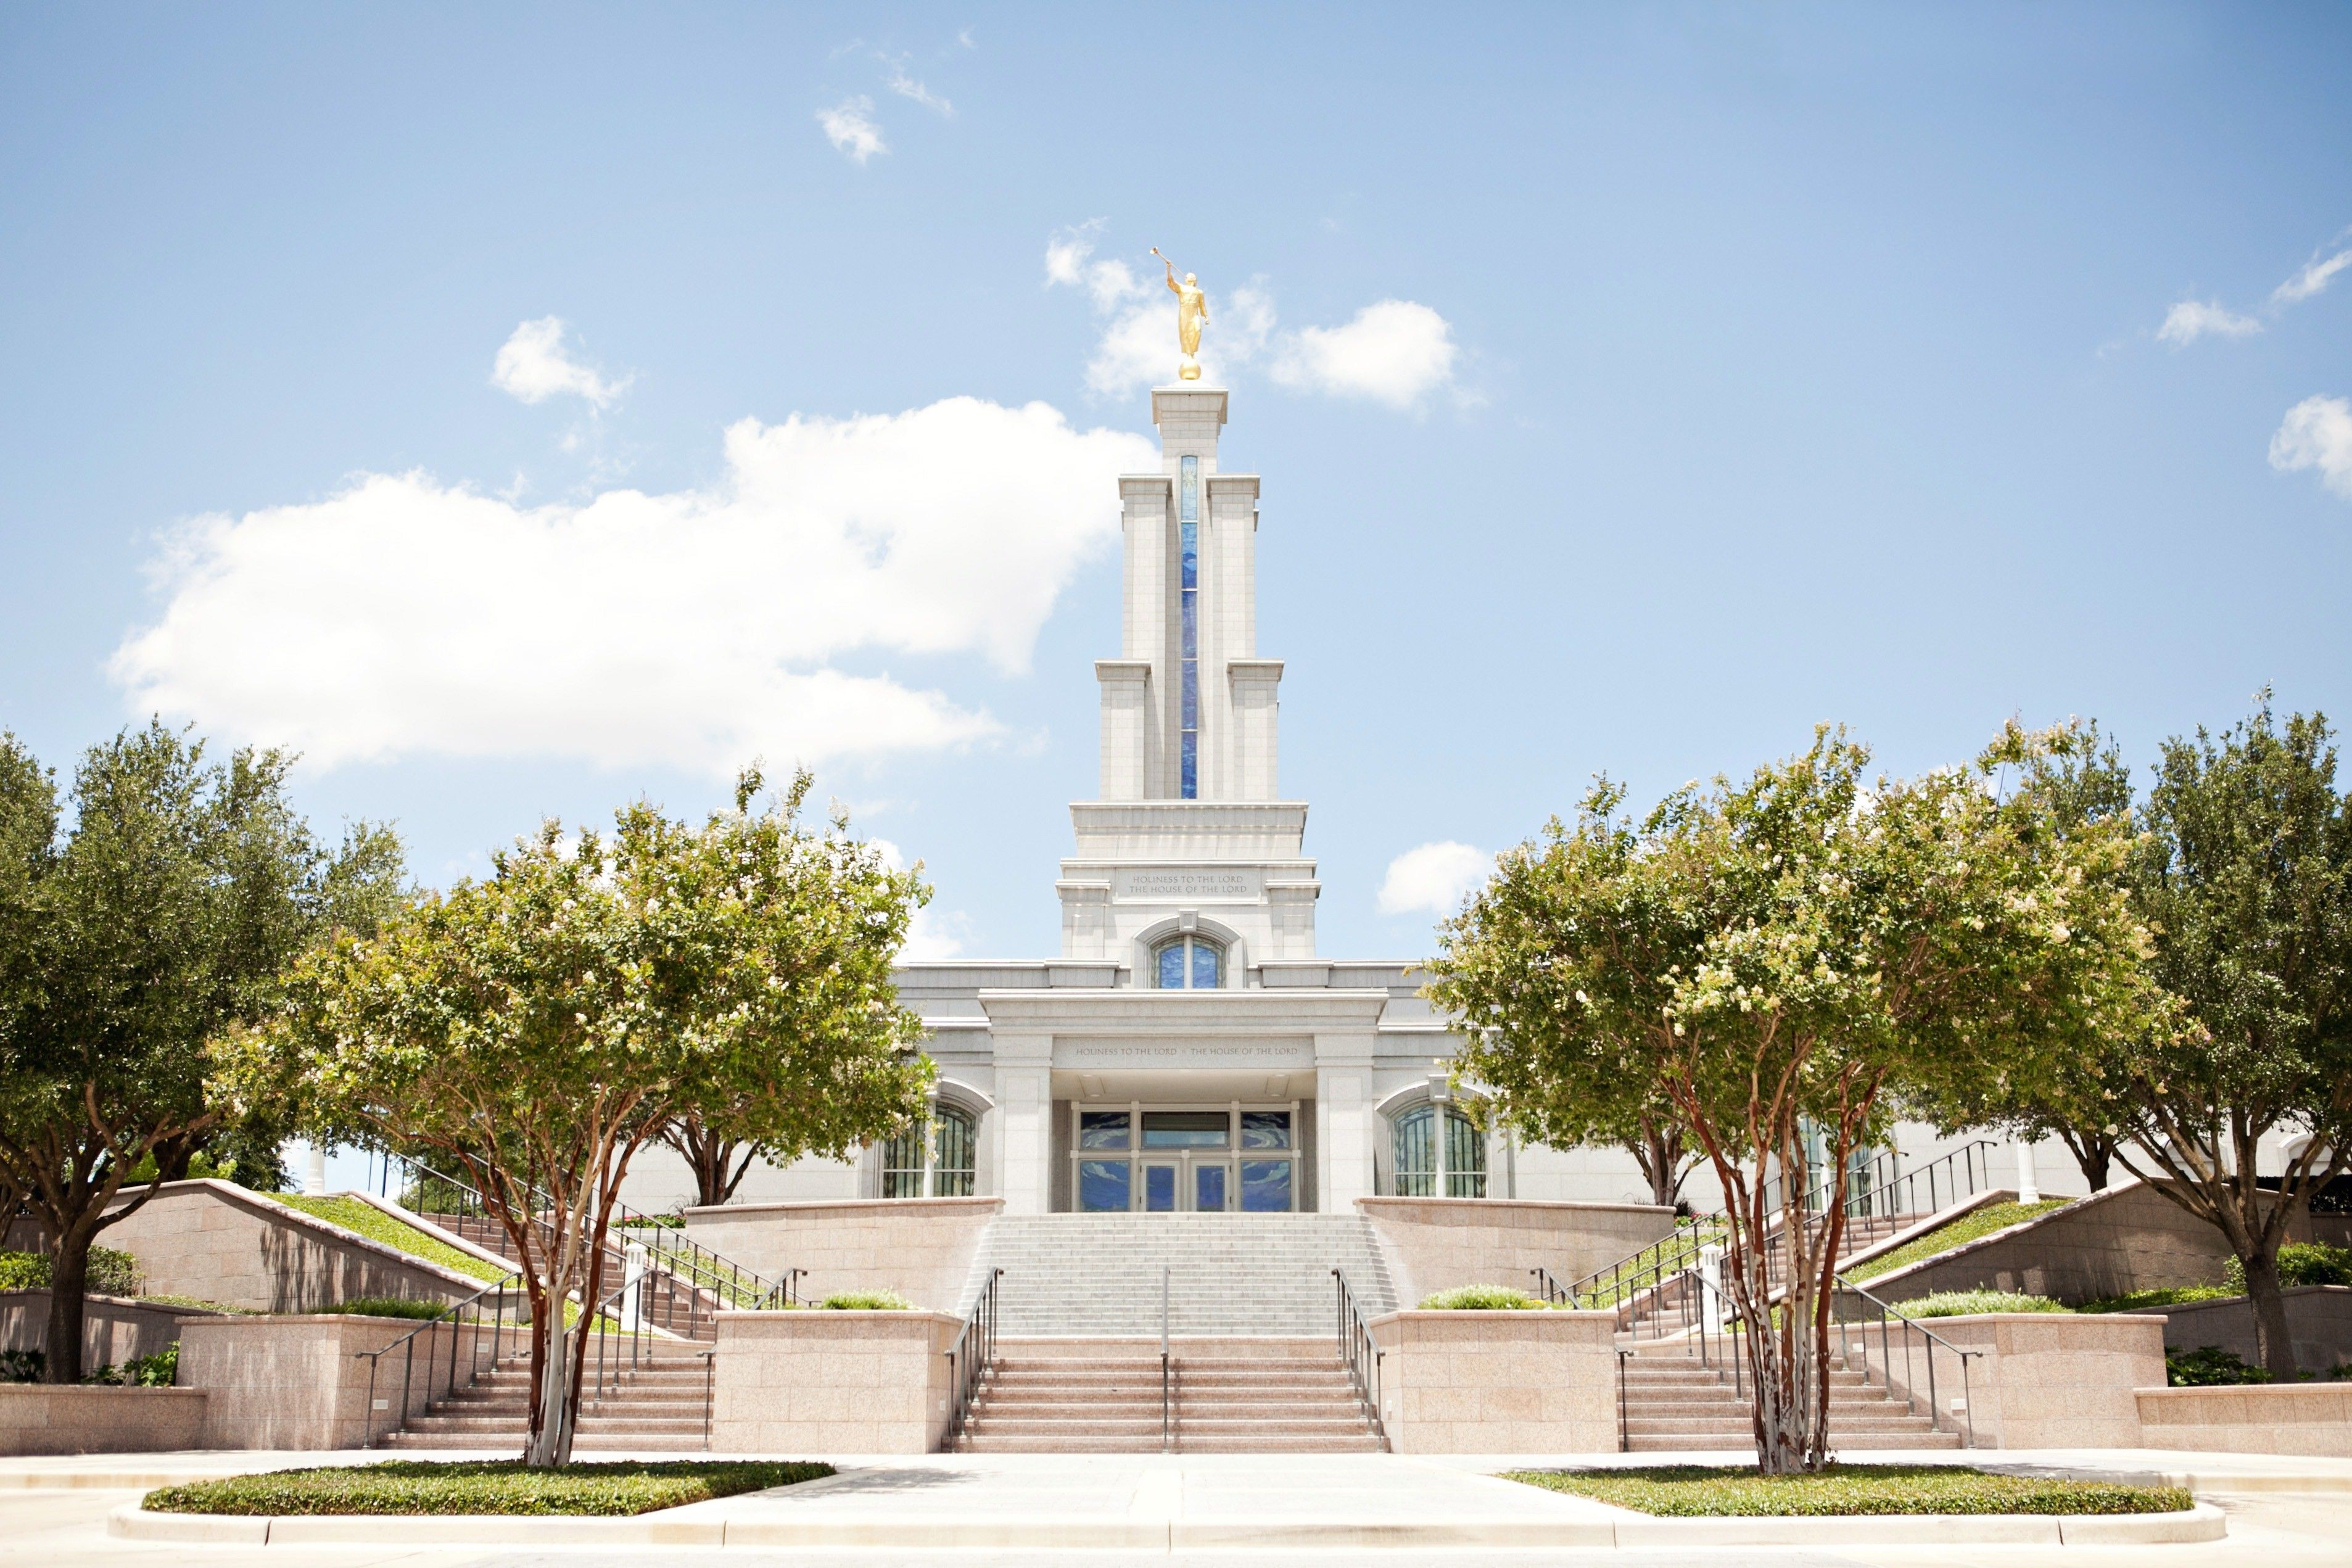 The San Antonio Texas Temple, including the entrance and scenery.